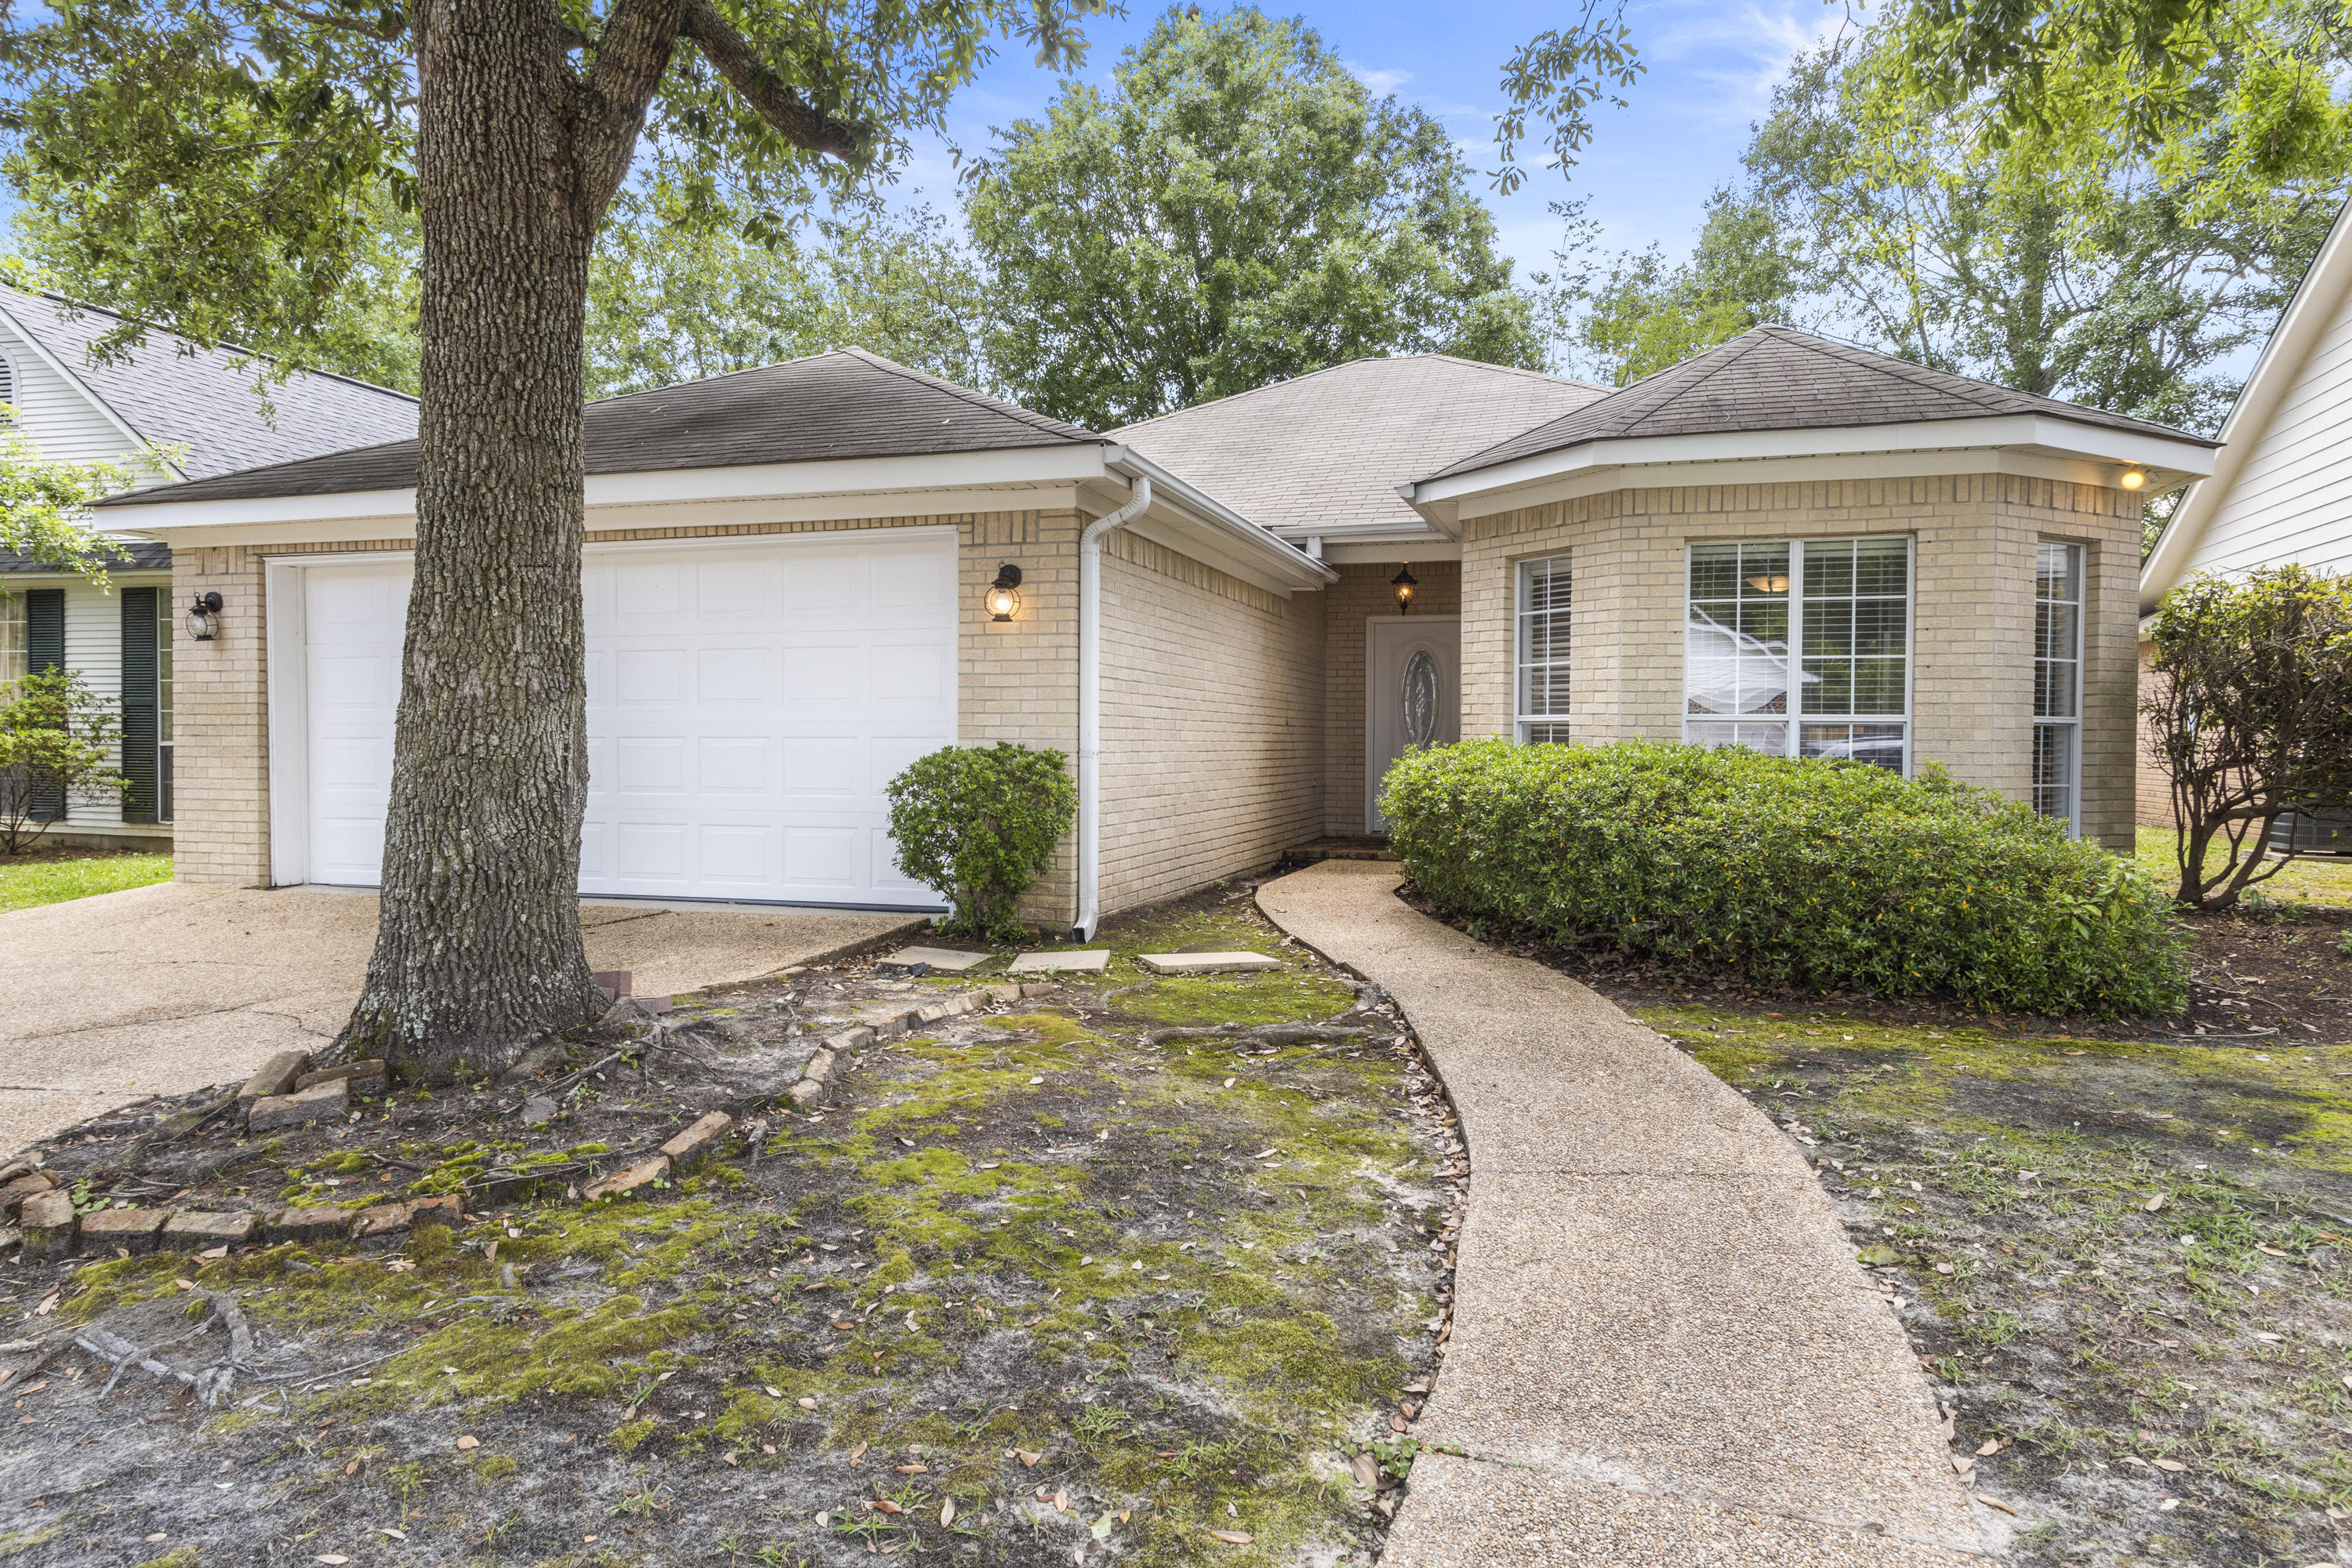 Move in Ready.  Brick home located on a dead end street.  Spacious living room, 3 bedrooms, 2 full baths, kitchen with granite counters, stainless steel appliances, breakfast area with bay window.  Florida room that is heated/cooled.  Large back patio.